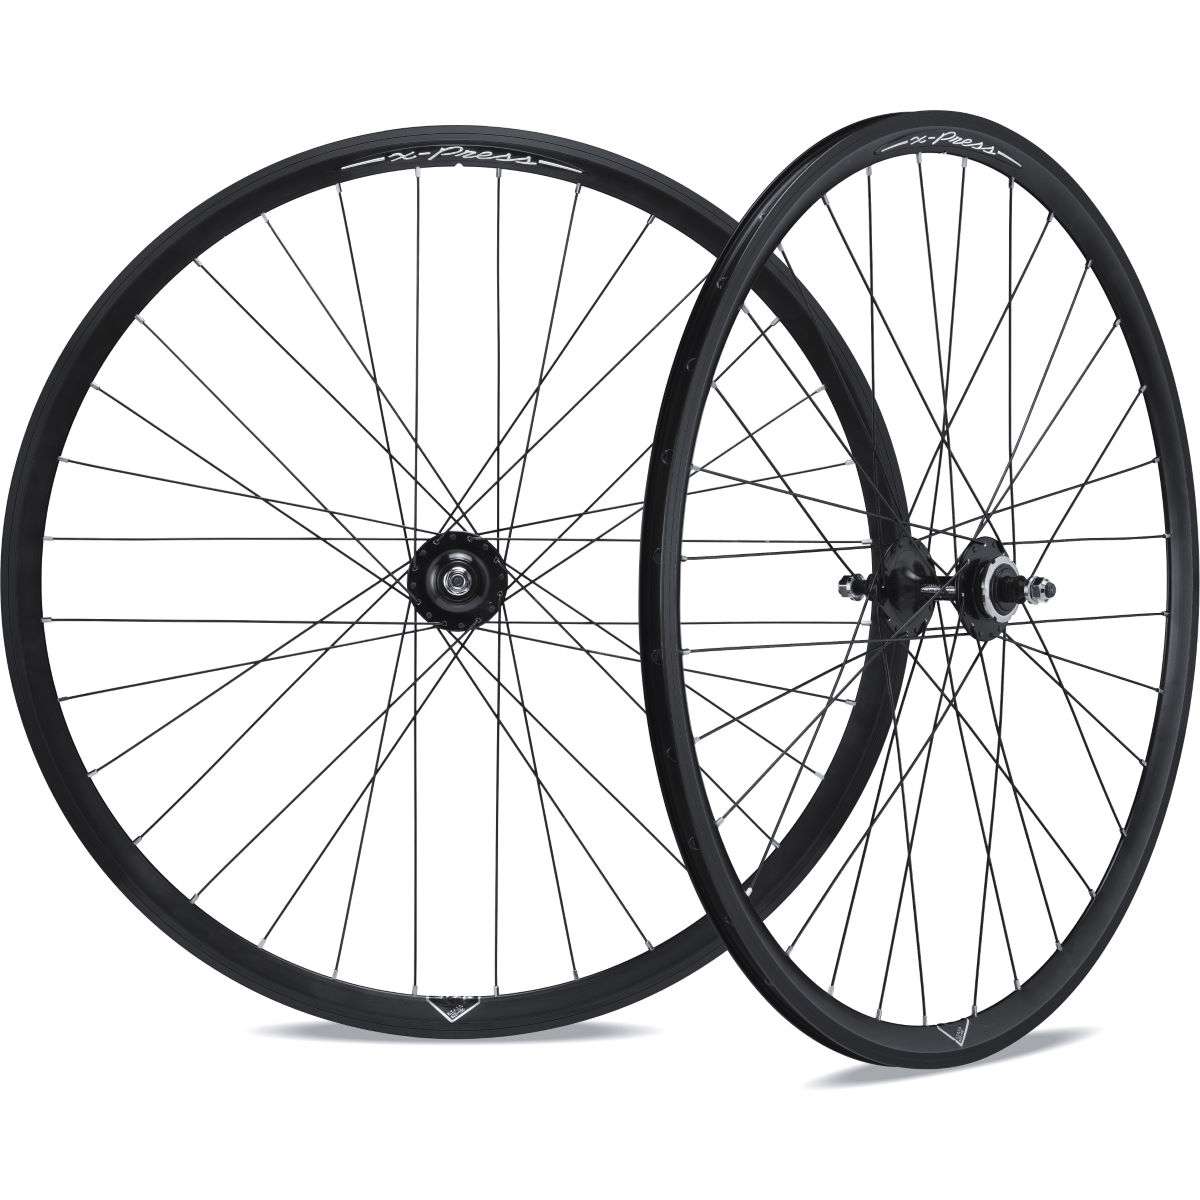 Roues de piste/route Miche X-Press - 700c - Track Only Noir